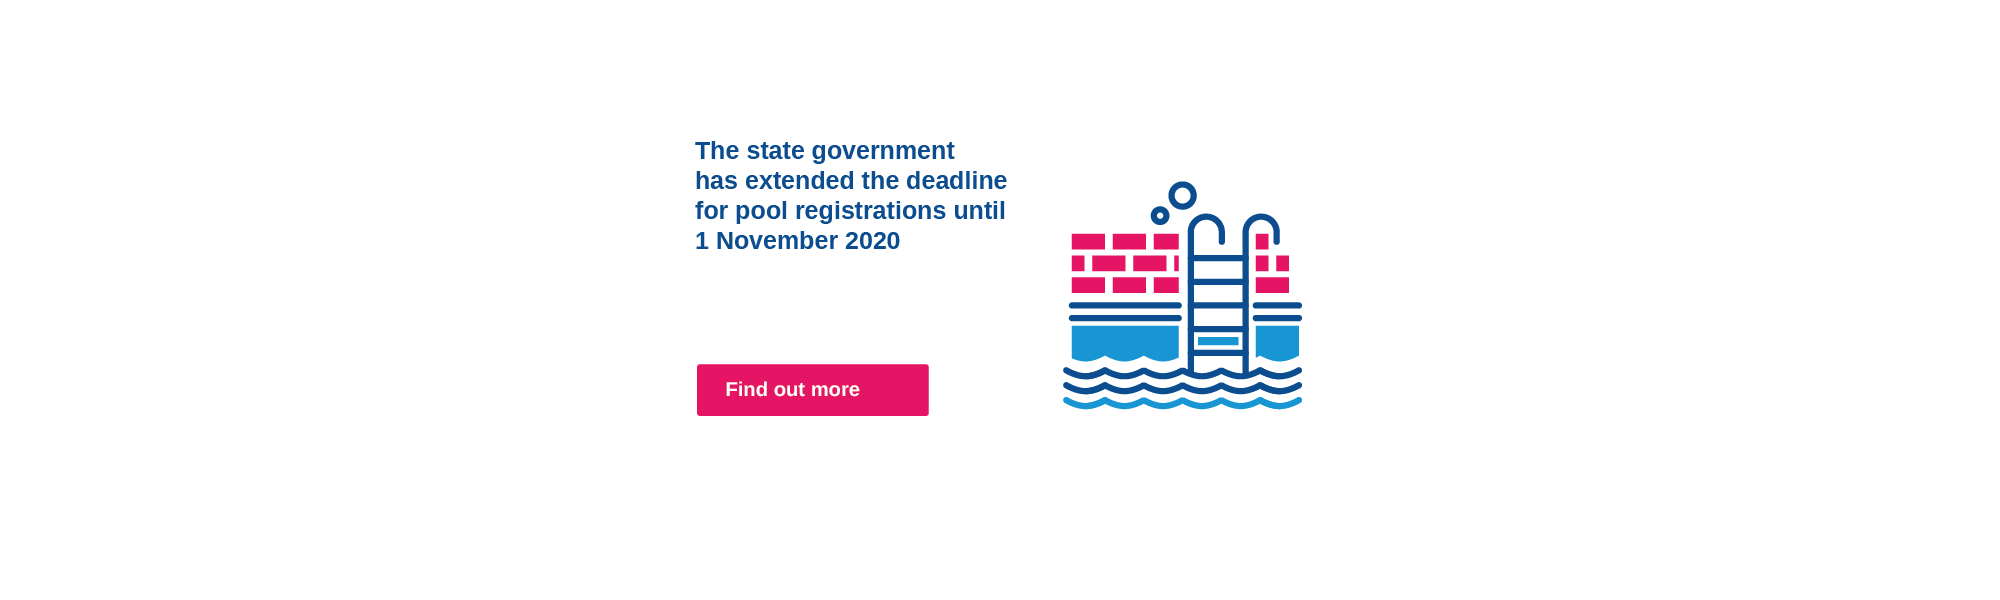 The state government has extended the date for pool registration to 1 November 2020